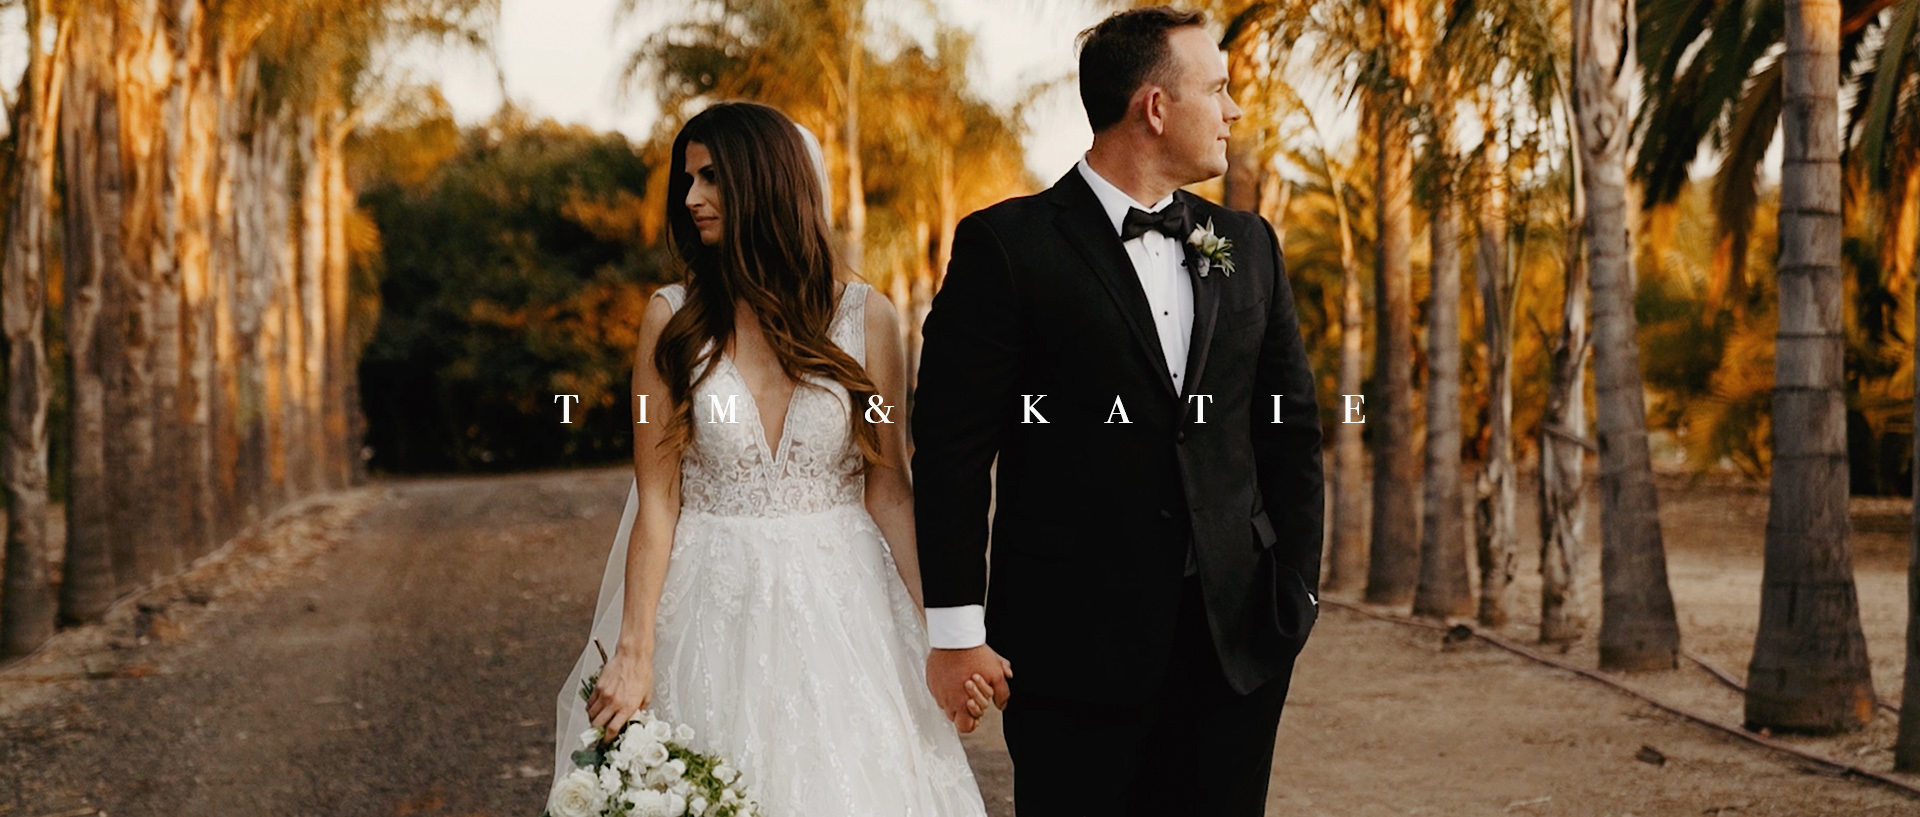 Tim + Katie | Oceanside, California | Paradise Falls